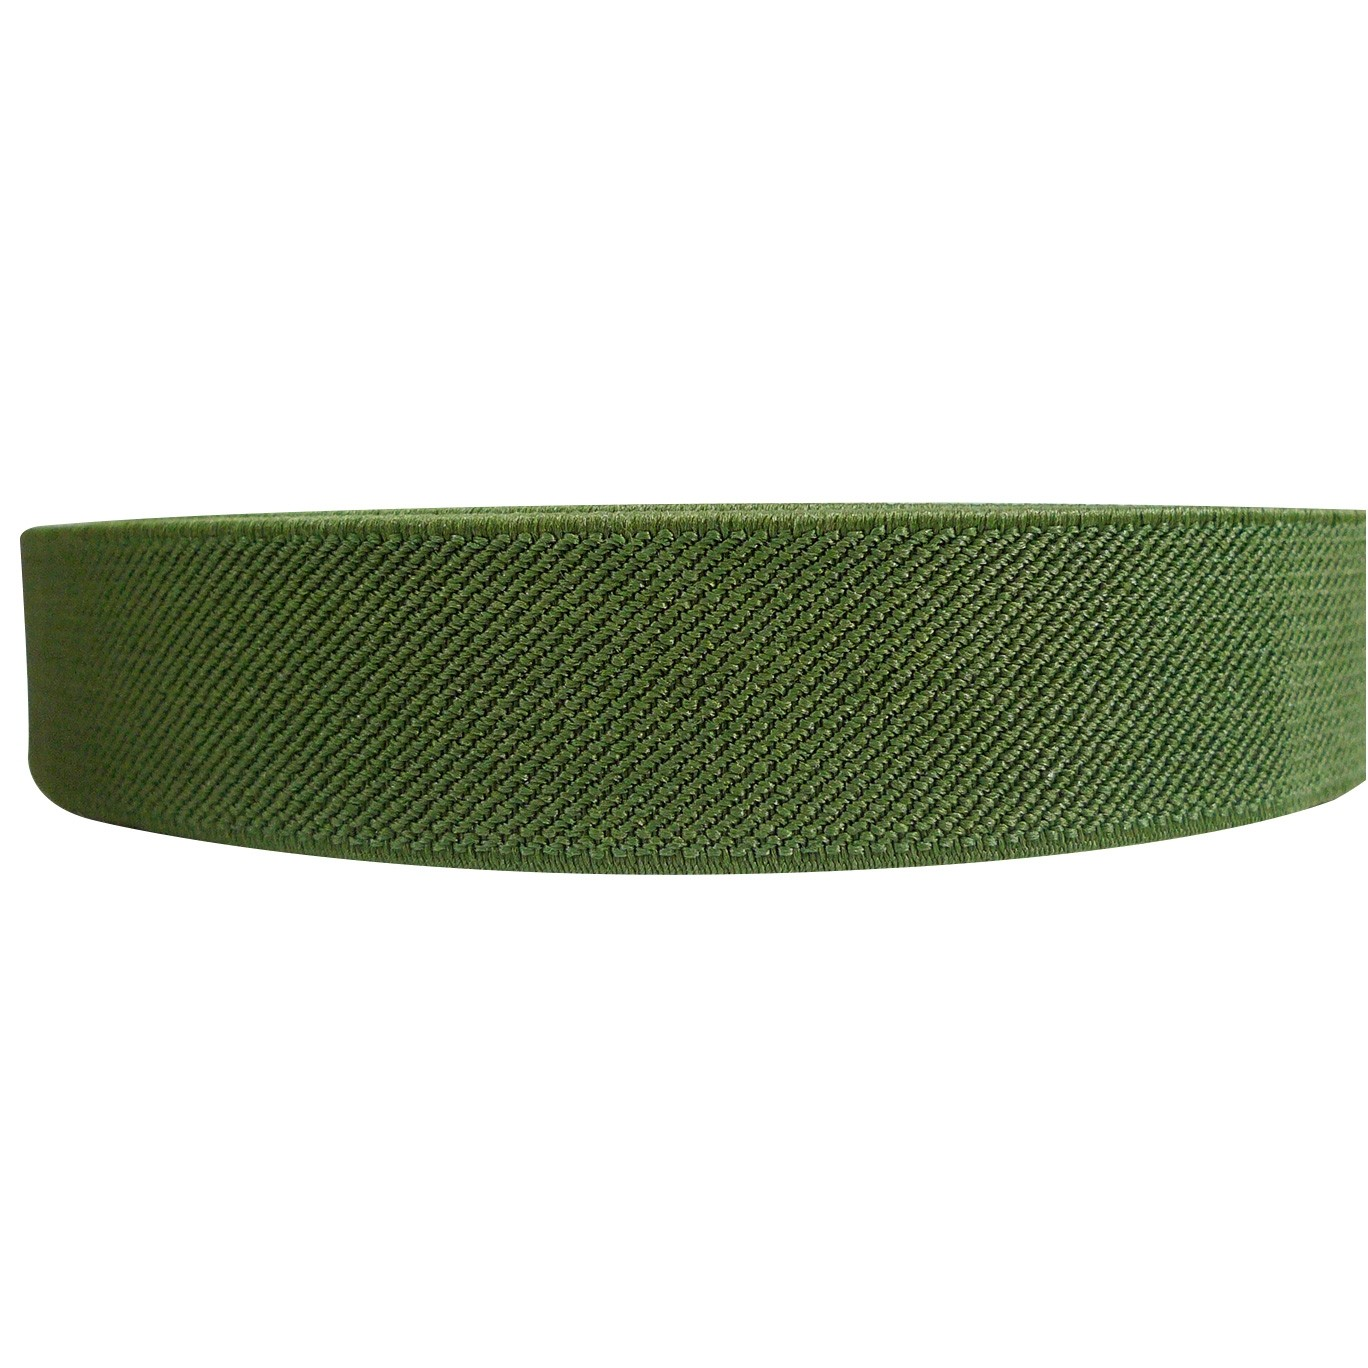 "12 Meters 1"" 25mm Solid Army Green Color Suspender Elastic Webbing Wholesale"